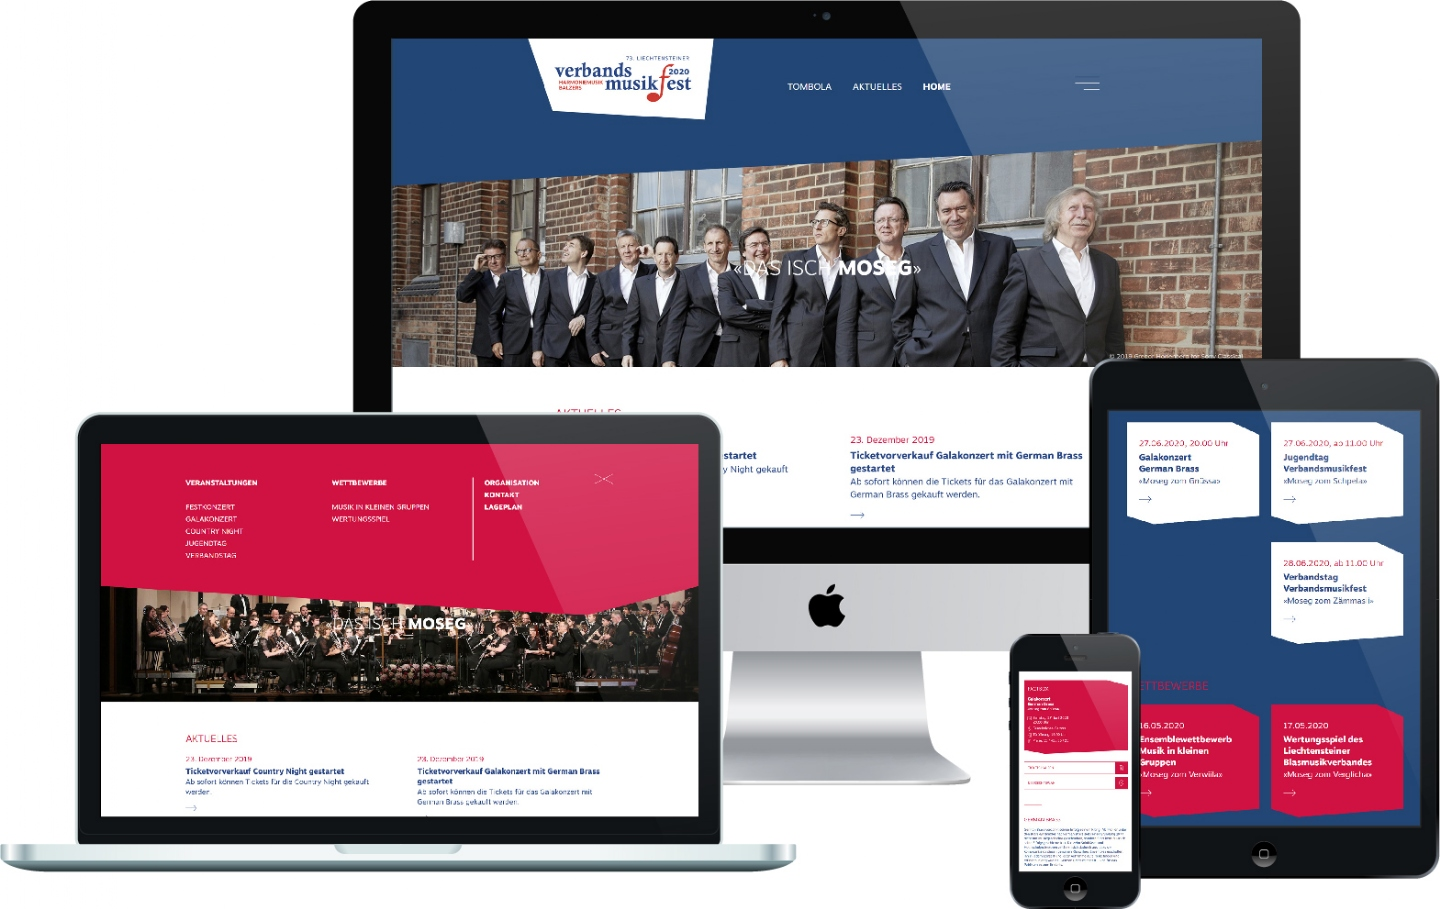 Verbandsmusikfest 2020 in Balzers - Responsive Website, CMS